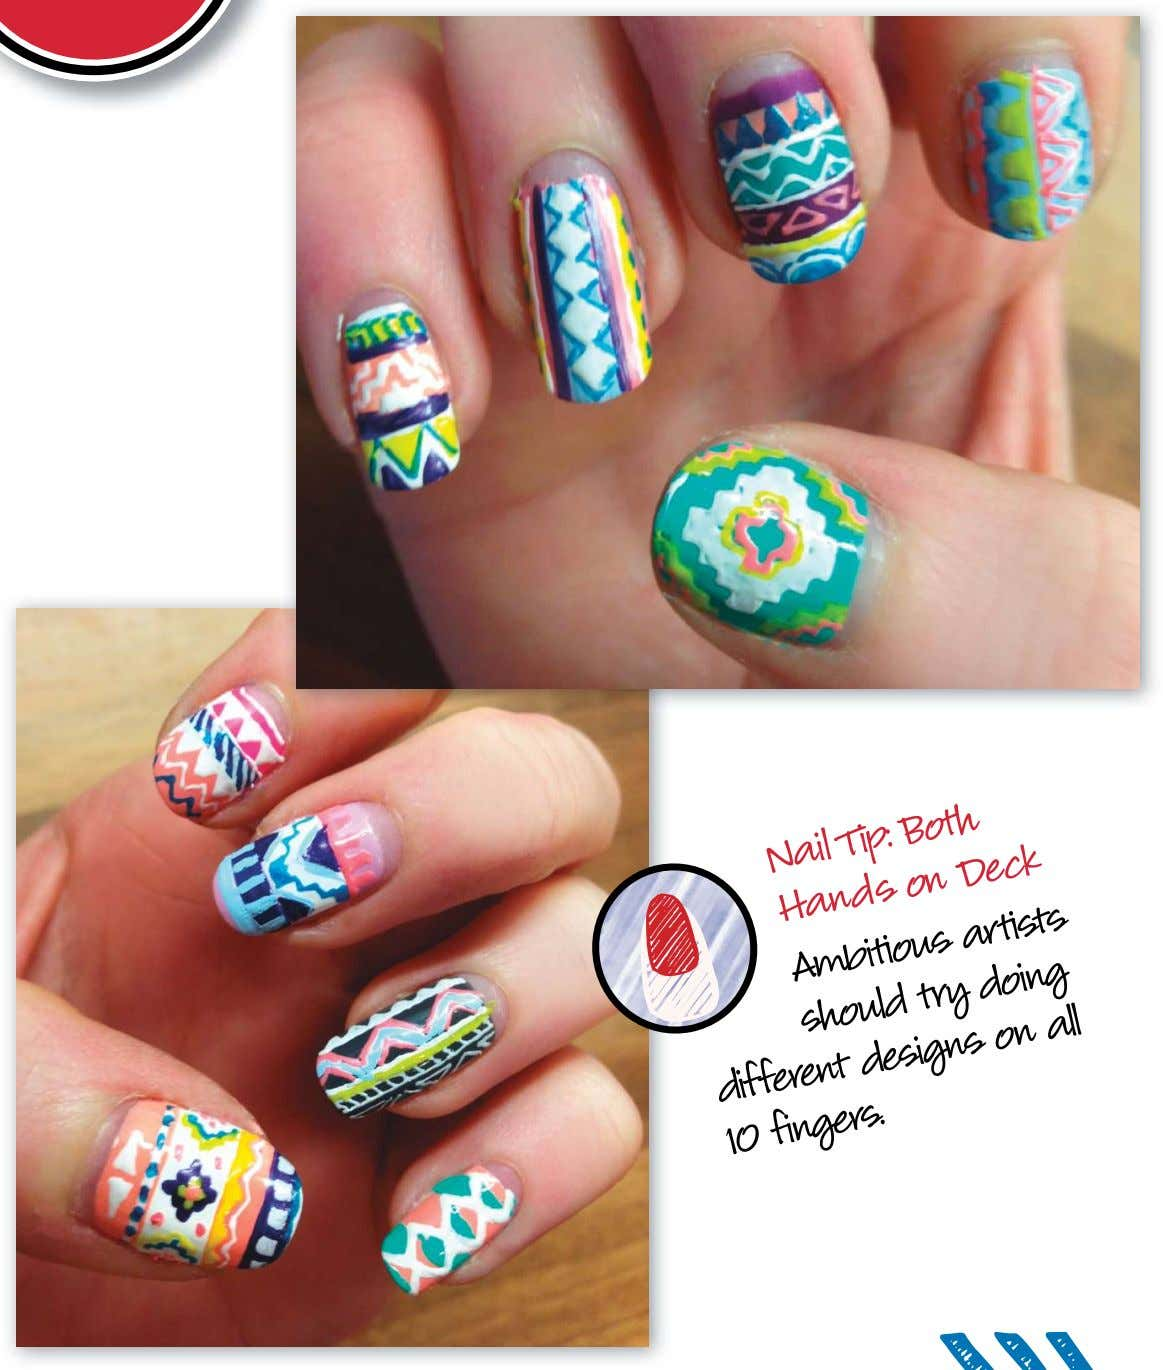 Nail Tip: Both Hands on Deck Ambitious try artists should doing different designs on all